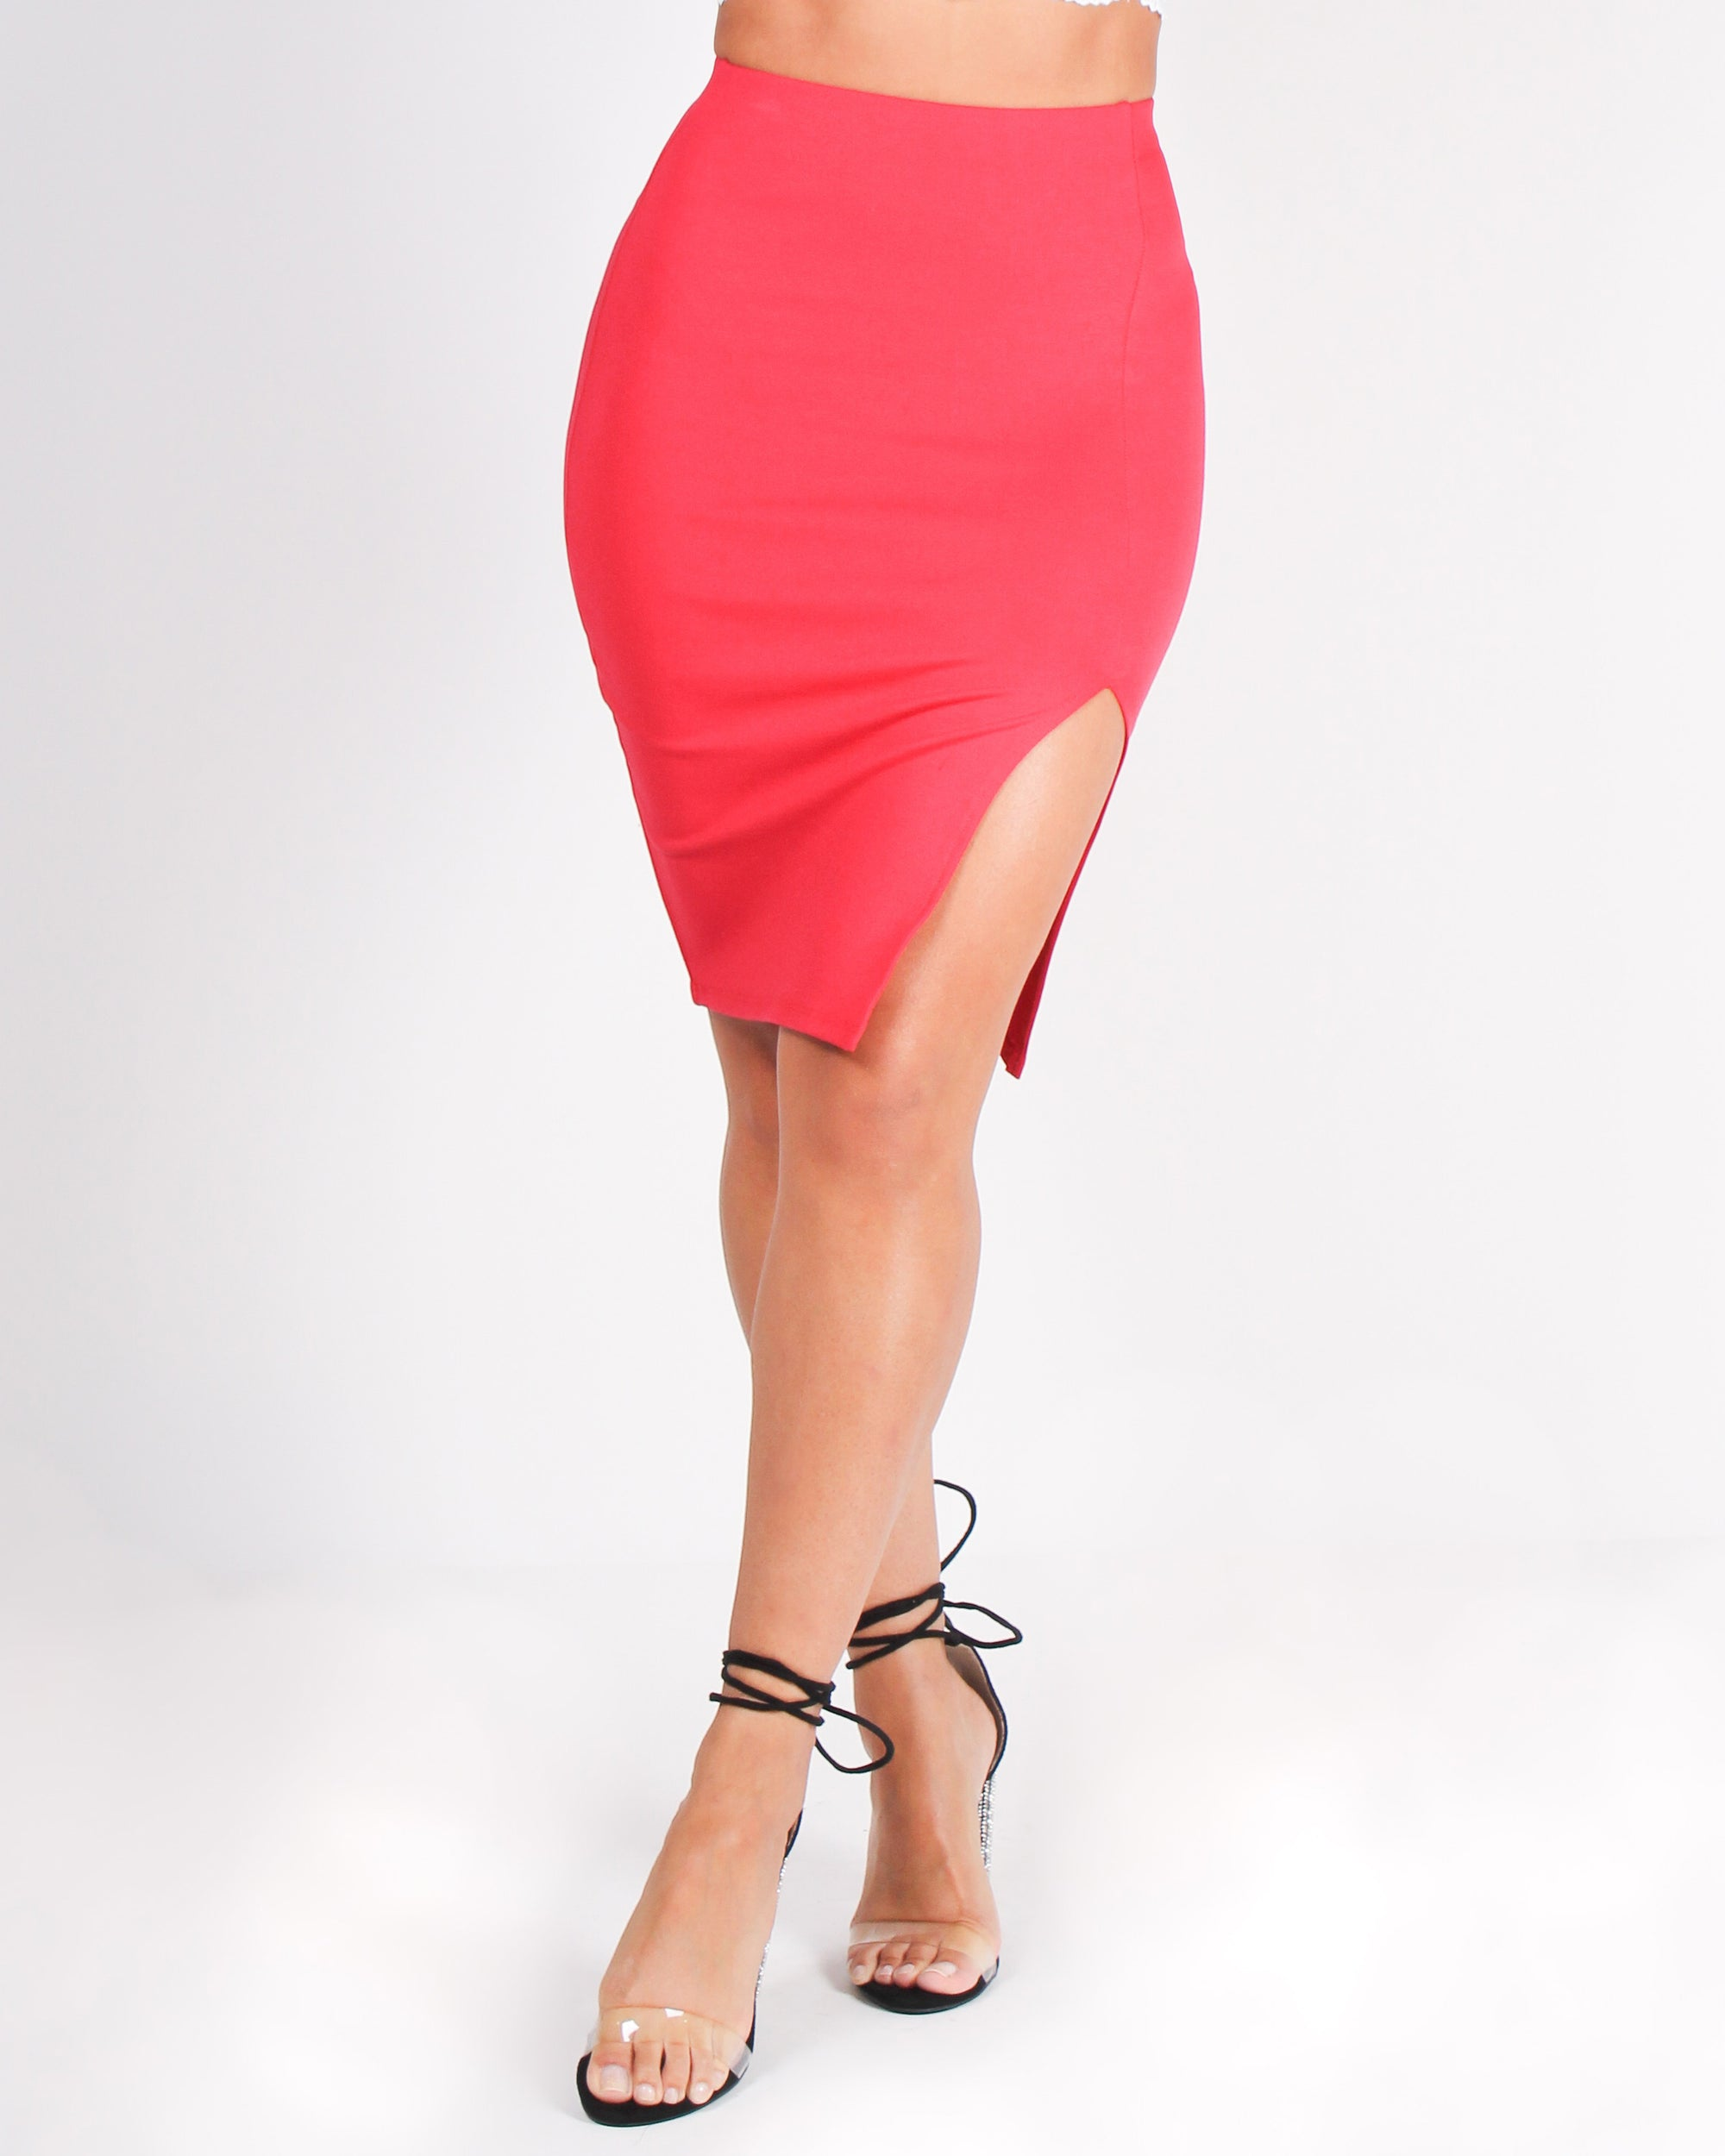 Fashion Q Shop Q The Evolution of You Pencil Skirt (Red) CH3148